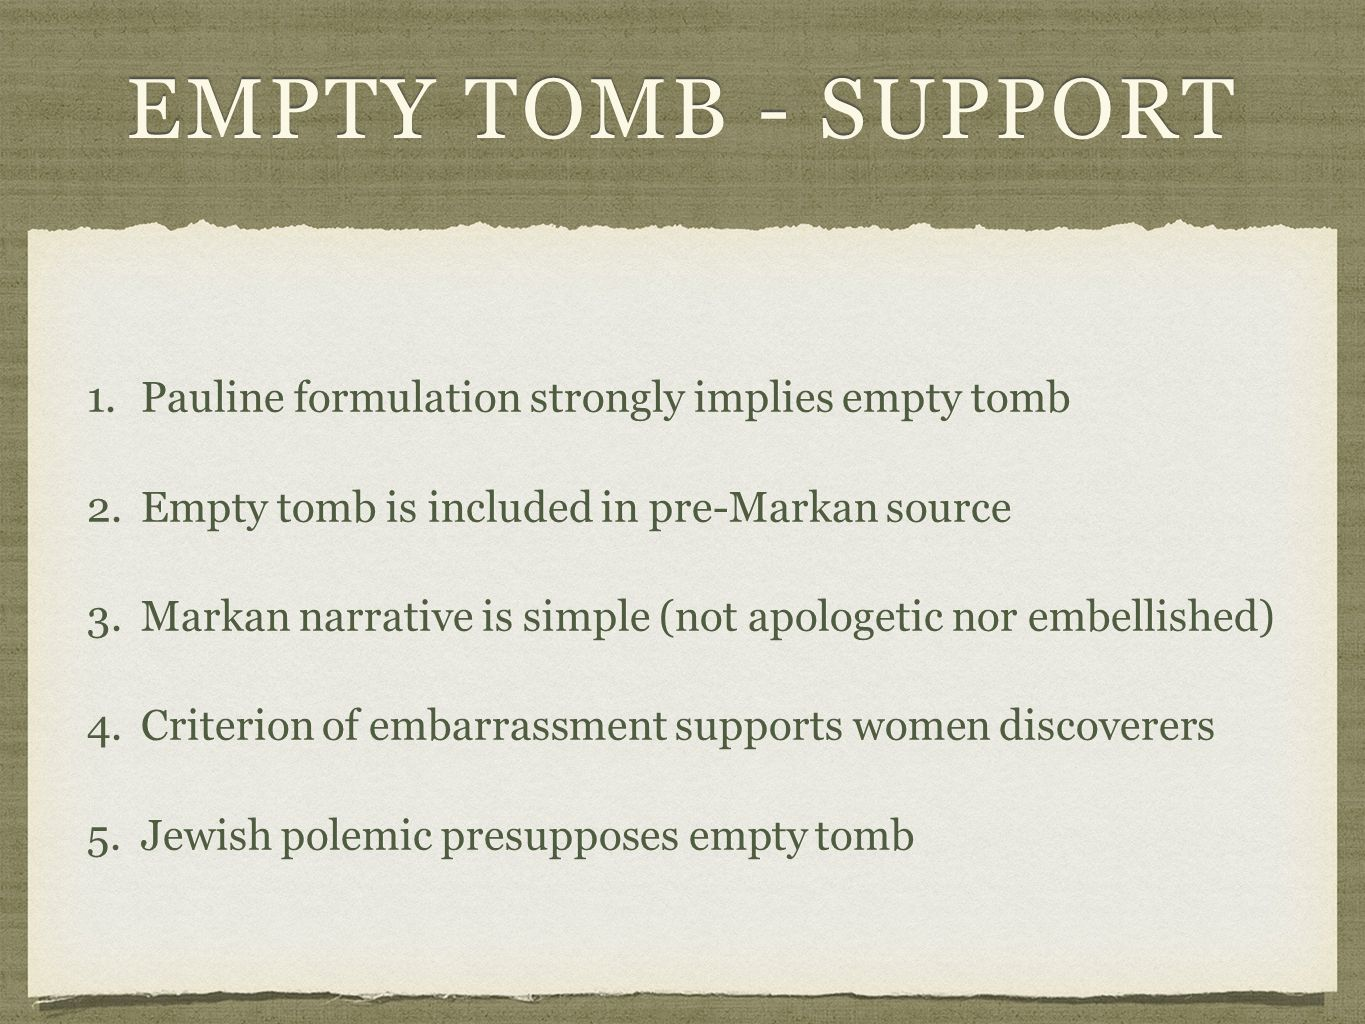 EMPTY TOMB - SUPPORT 1.Pauline formulation strongly implies empty tomb1.Pauline formulation strongly implies empty tomb 2.Empty tomb is included in pre-Markan source2.Empty tomb is included in pre-Markan source 3.Markan narrative is simple (not apologetic nor embellished)3.Markan narrative is simple (not apologetic nor embellished) 4.Criterion of embarrassment supports women discoverers4.Criterion of embarrassment supports women discoverers 5.Jewish polemic presupposes empty tomb5.Jewish polemic presupposes empty tomb